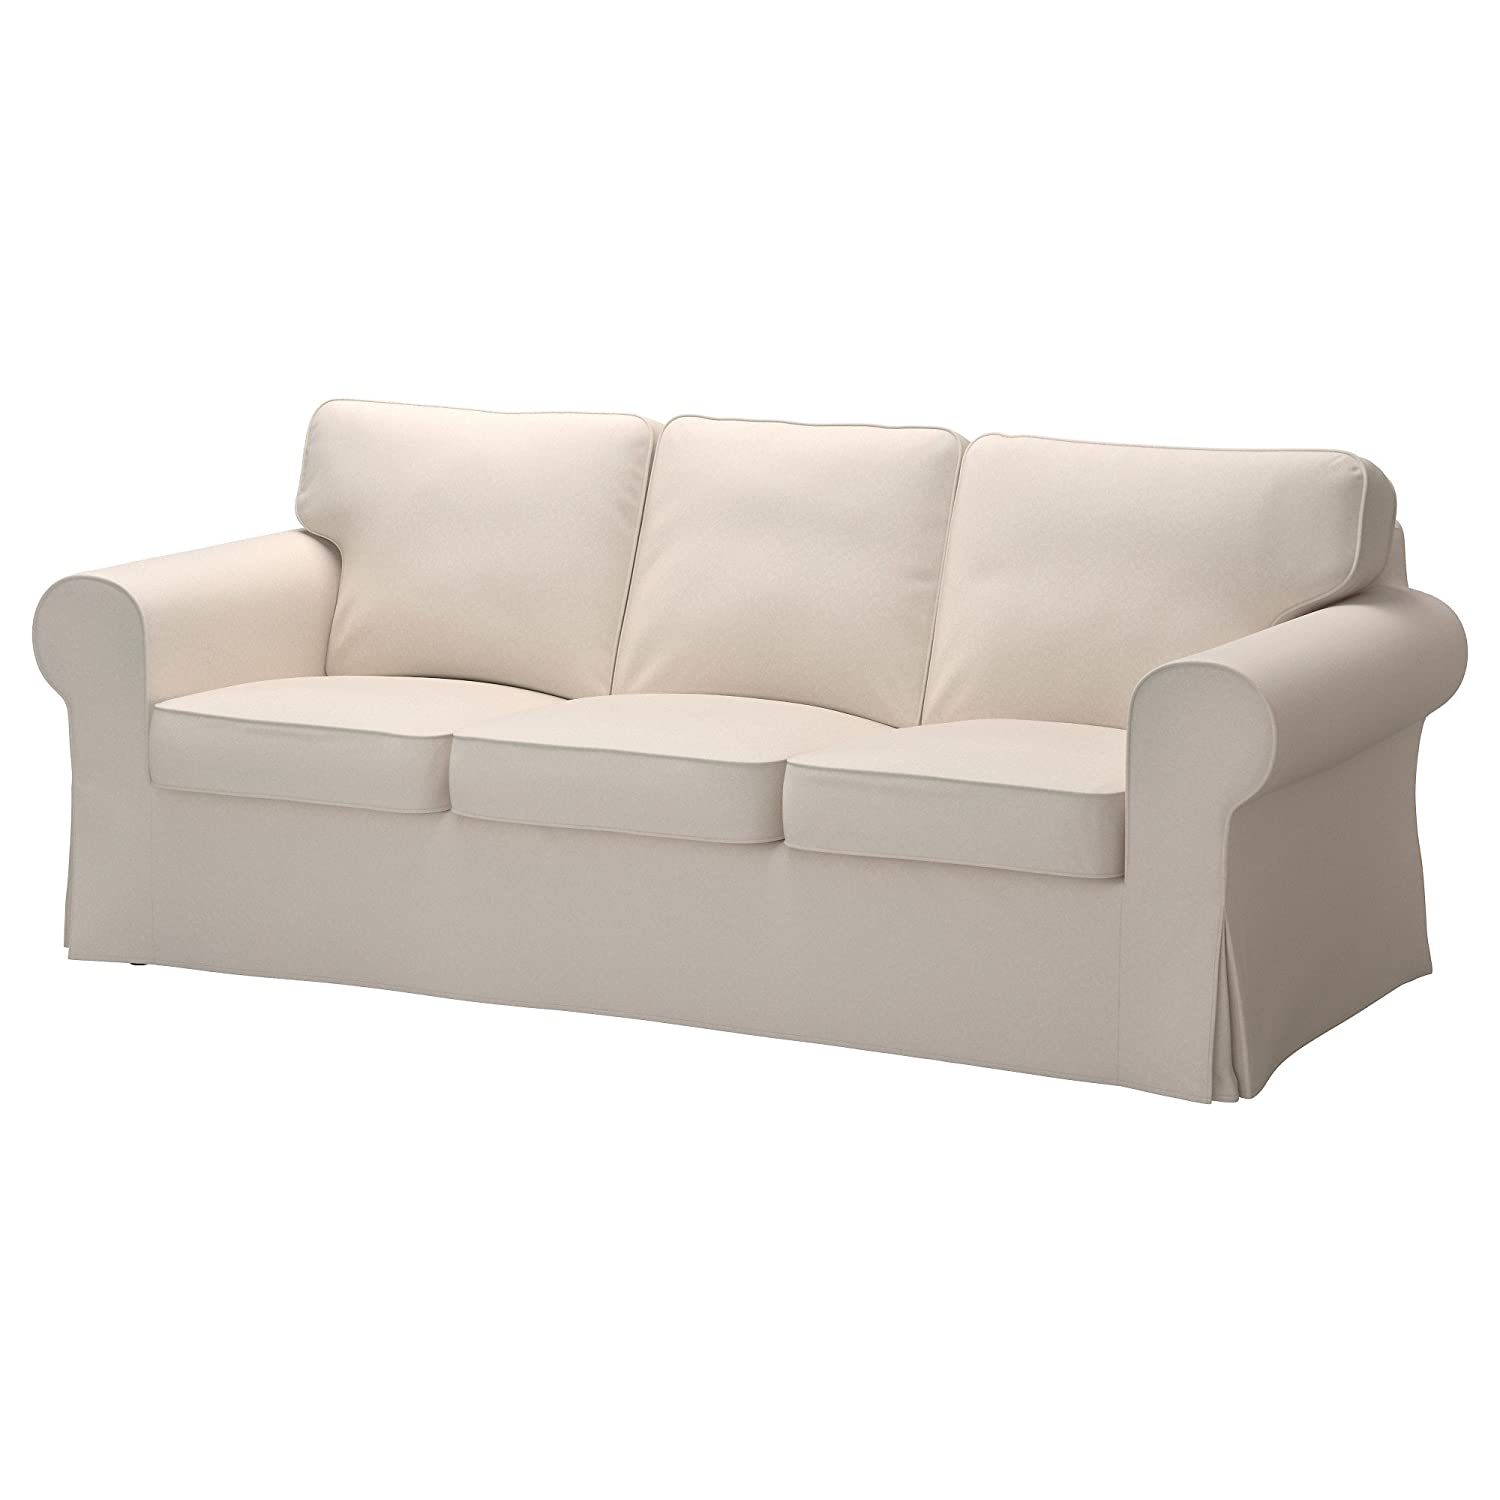 Amazon IKEA Ektorp Sofa Couch Cover Lofallet Beige Home